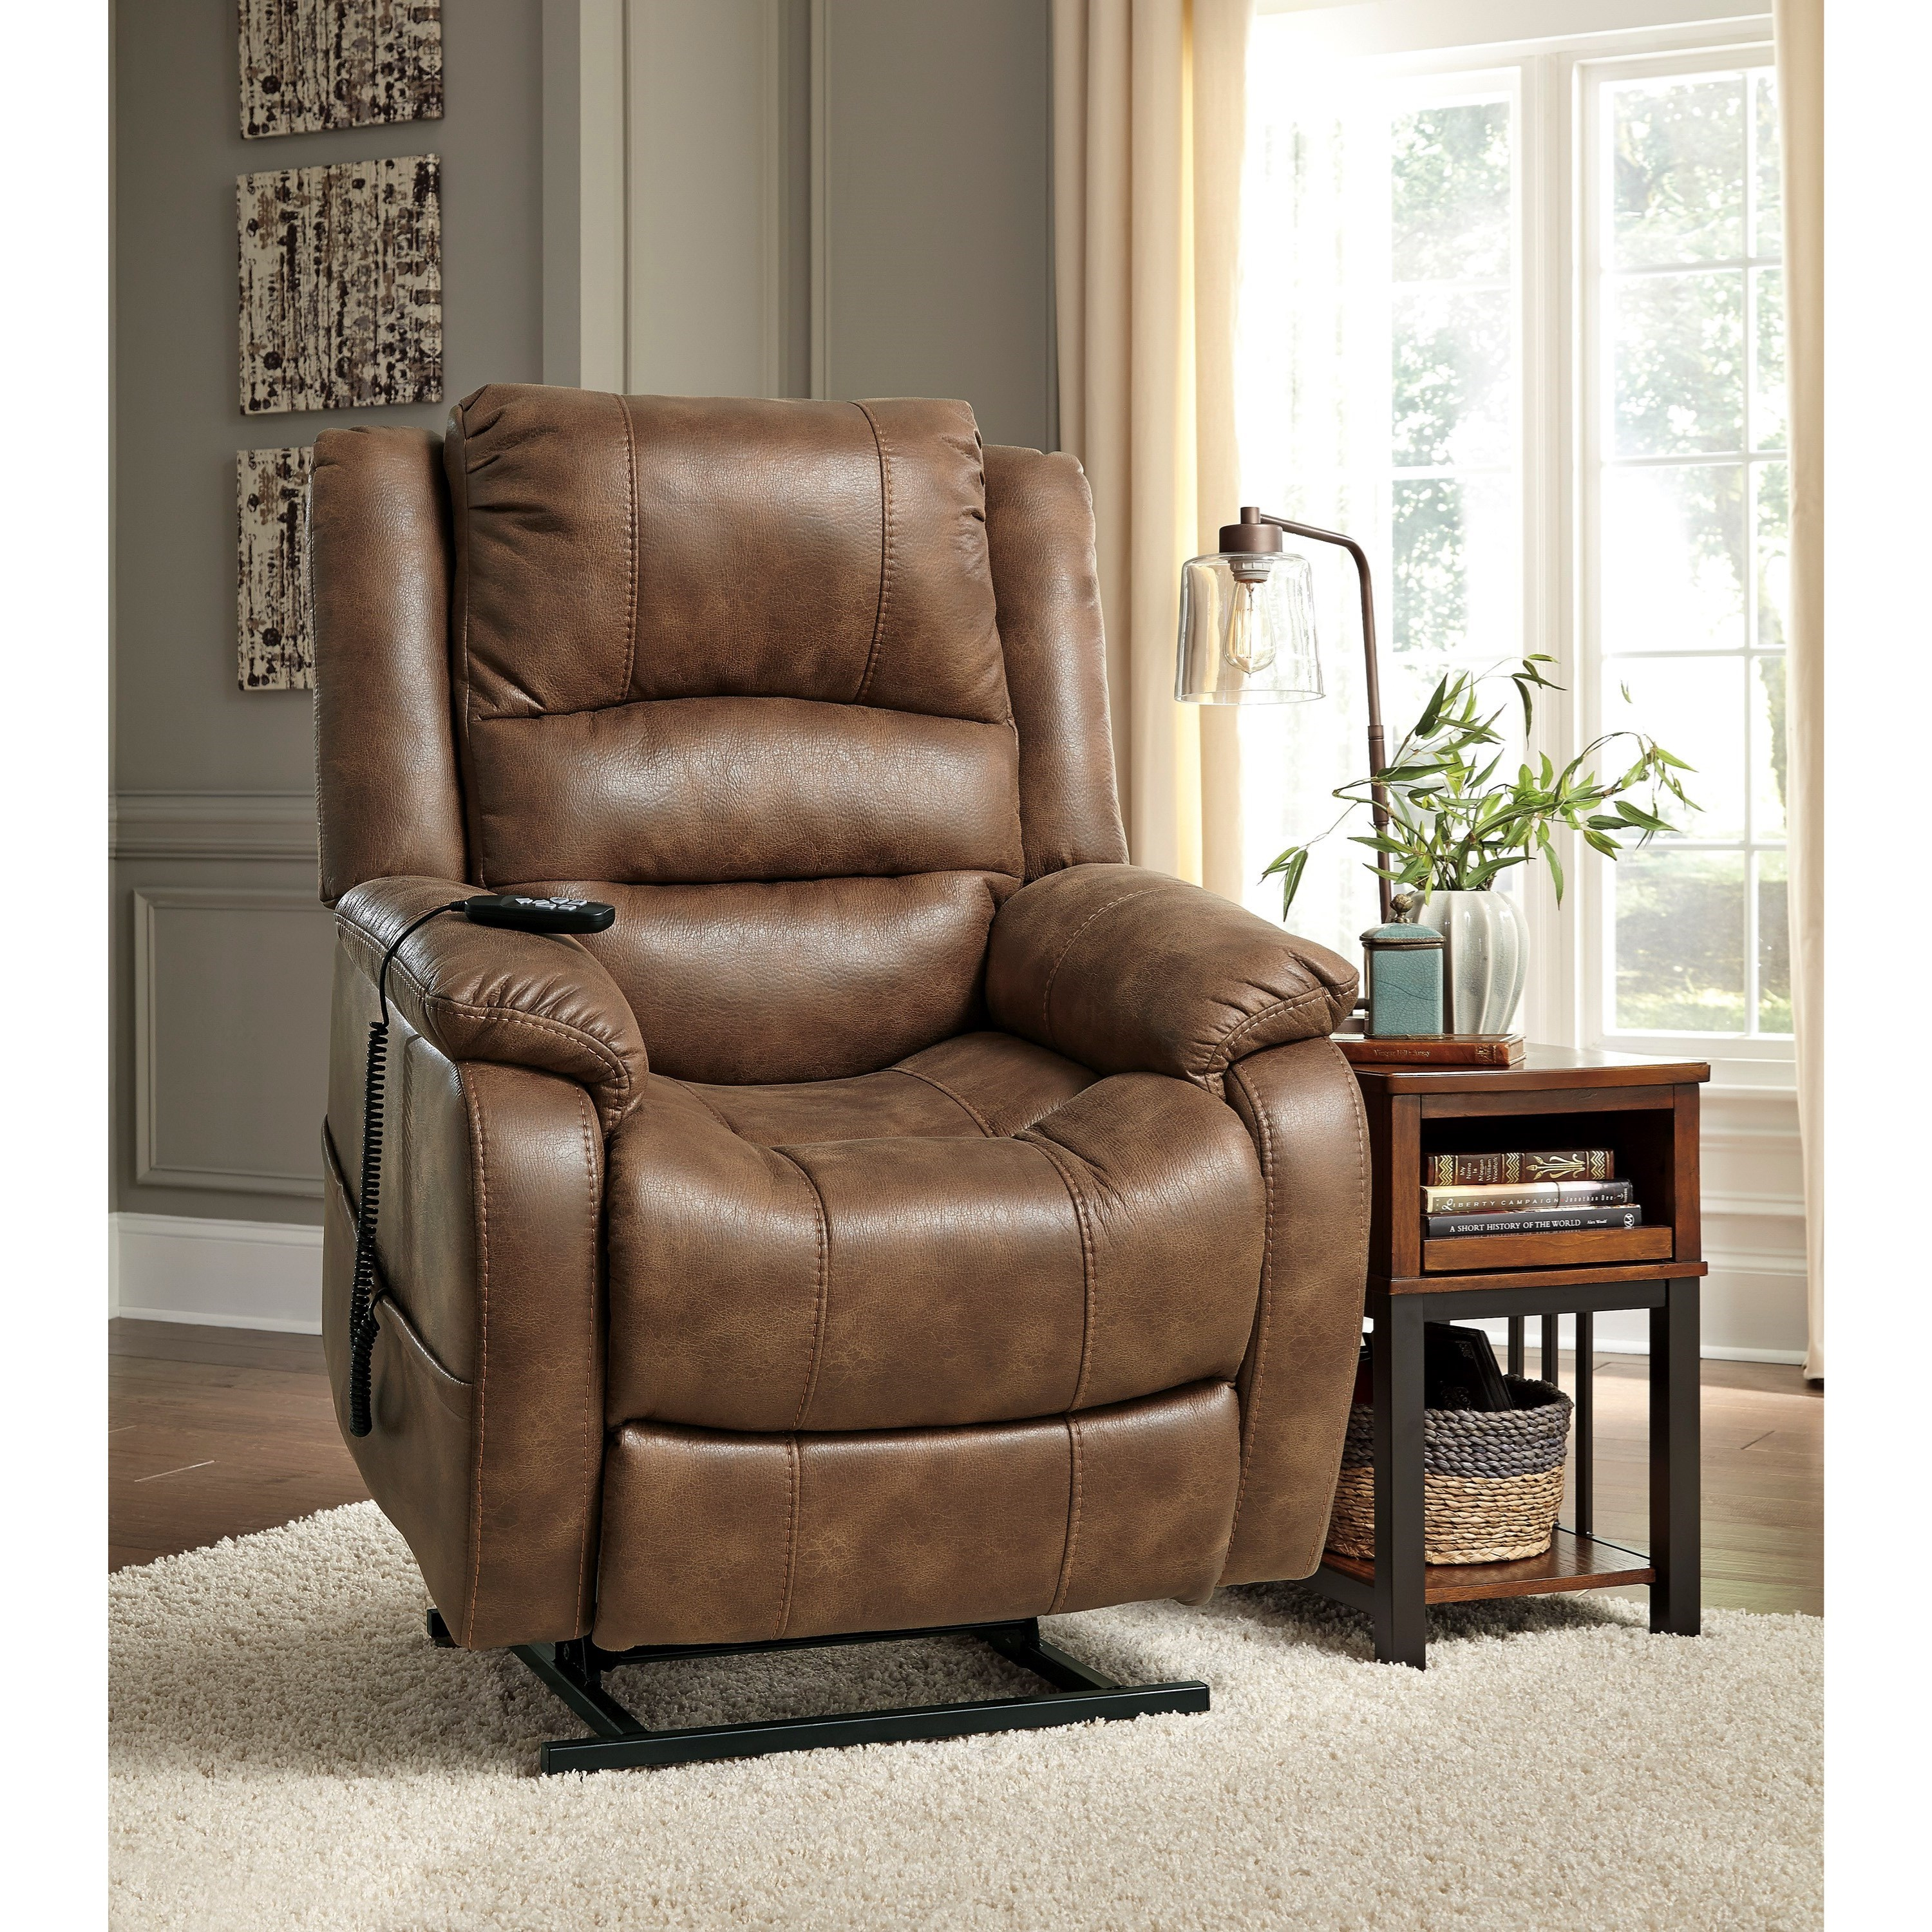 Can You Buy Ashley Furniture Online: Ashley (Signature Design) Yandel Faux Leather Power Lift